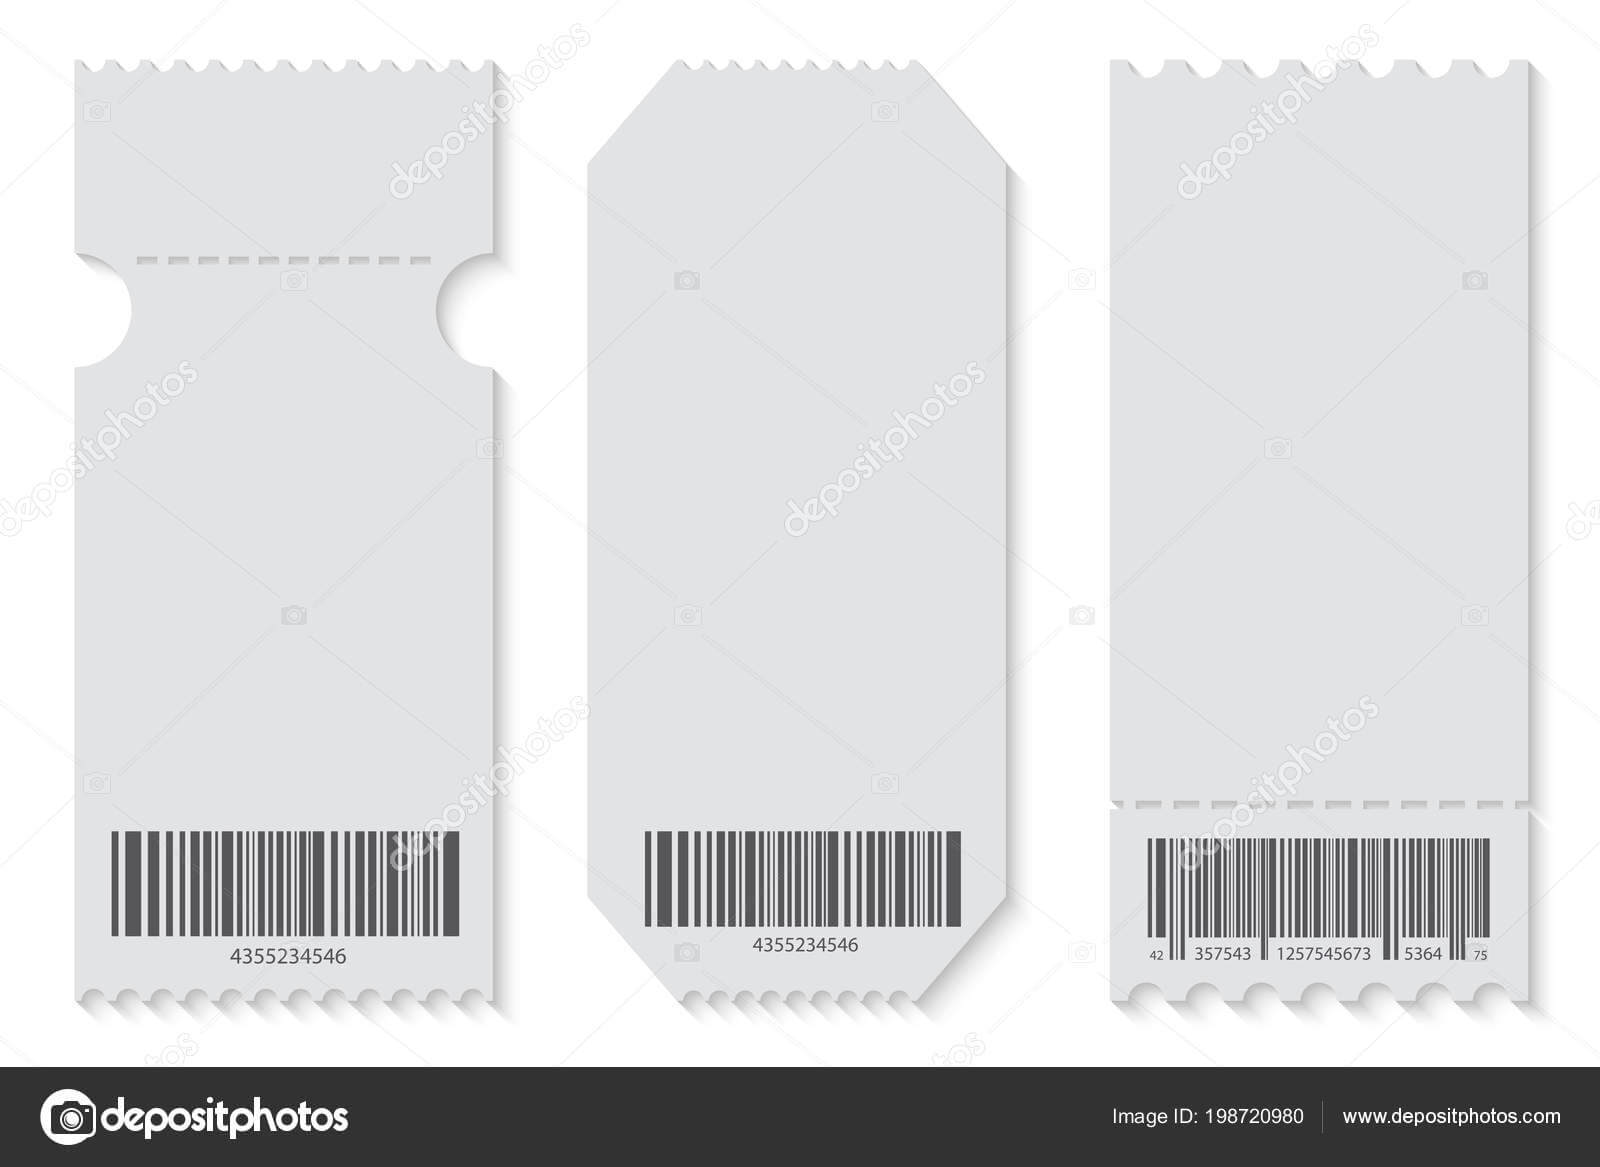 Creative Vector Illustration Of Empty Ticket Template Mockup Pertaining To Blank Train Ticket Template